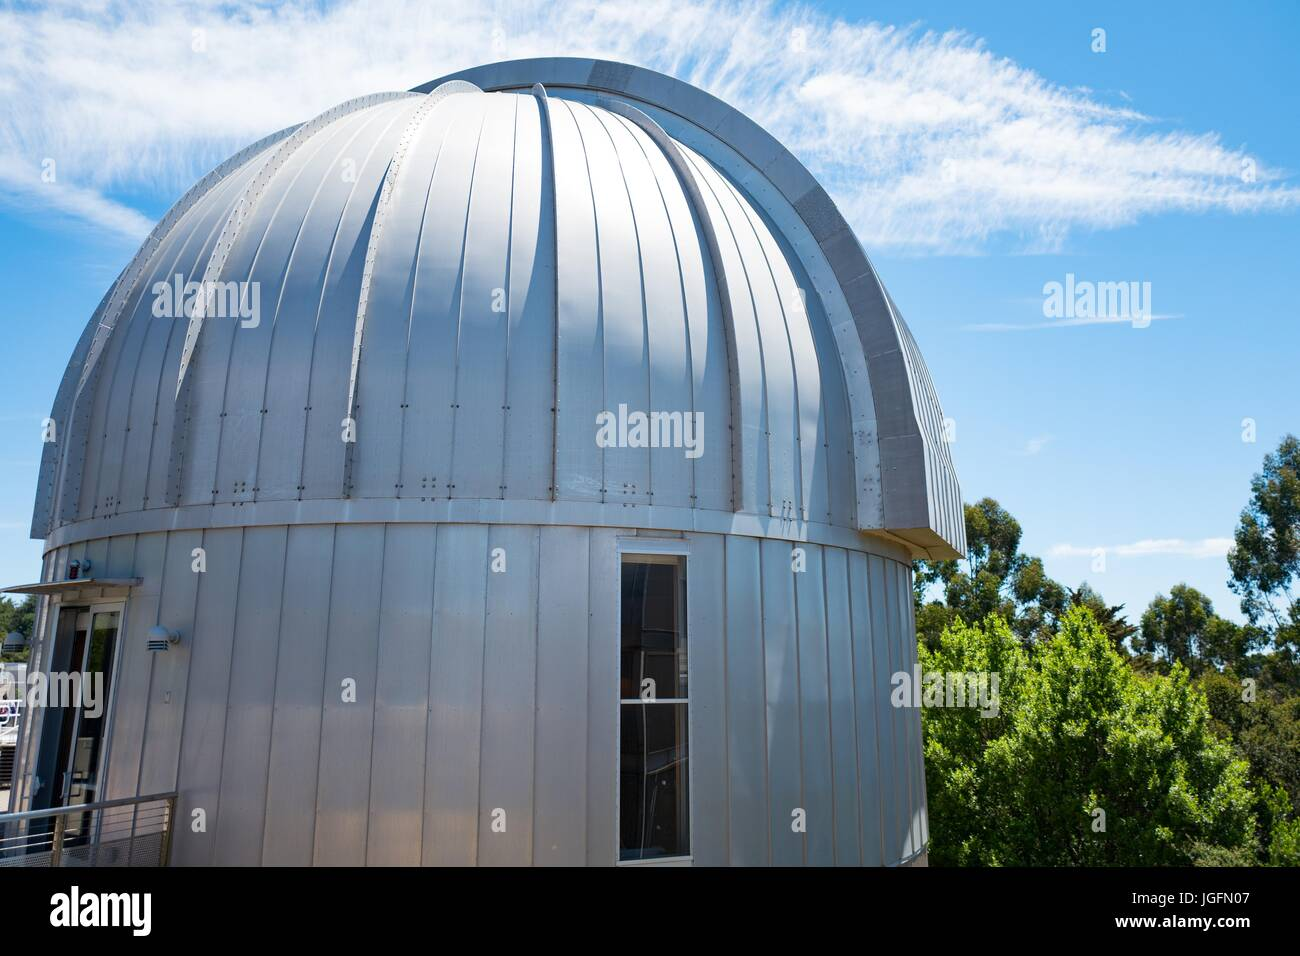 Dome of an observatory on a sunny day at the Chabot Space and Science Center, a science museum and observatory in - Stock Image